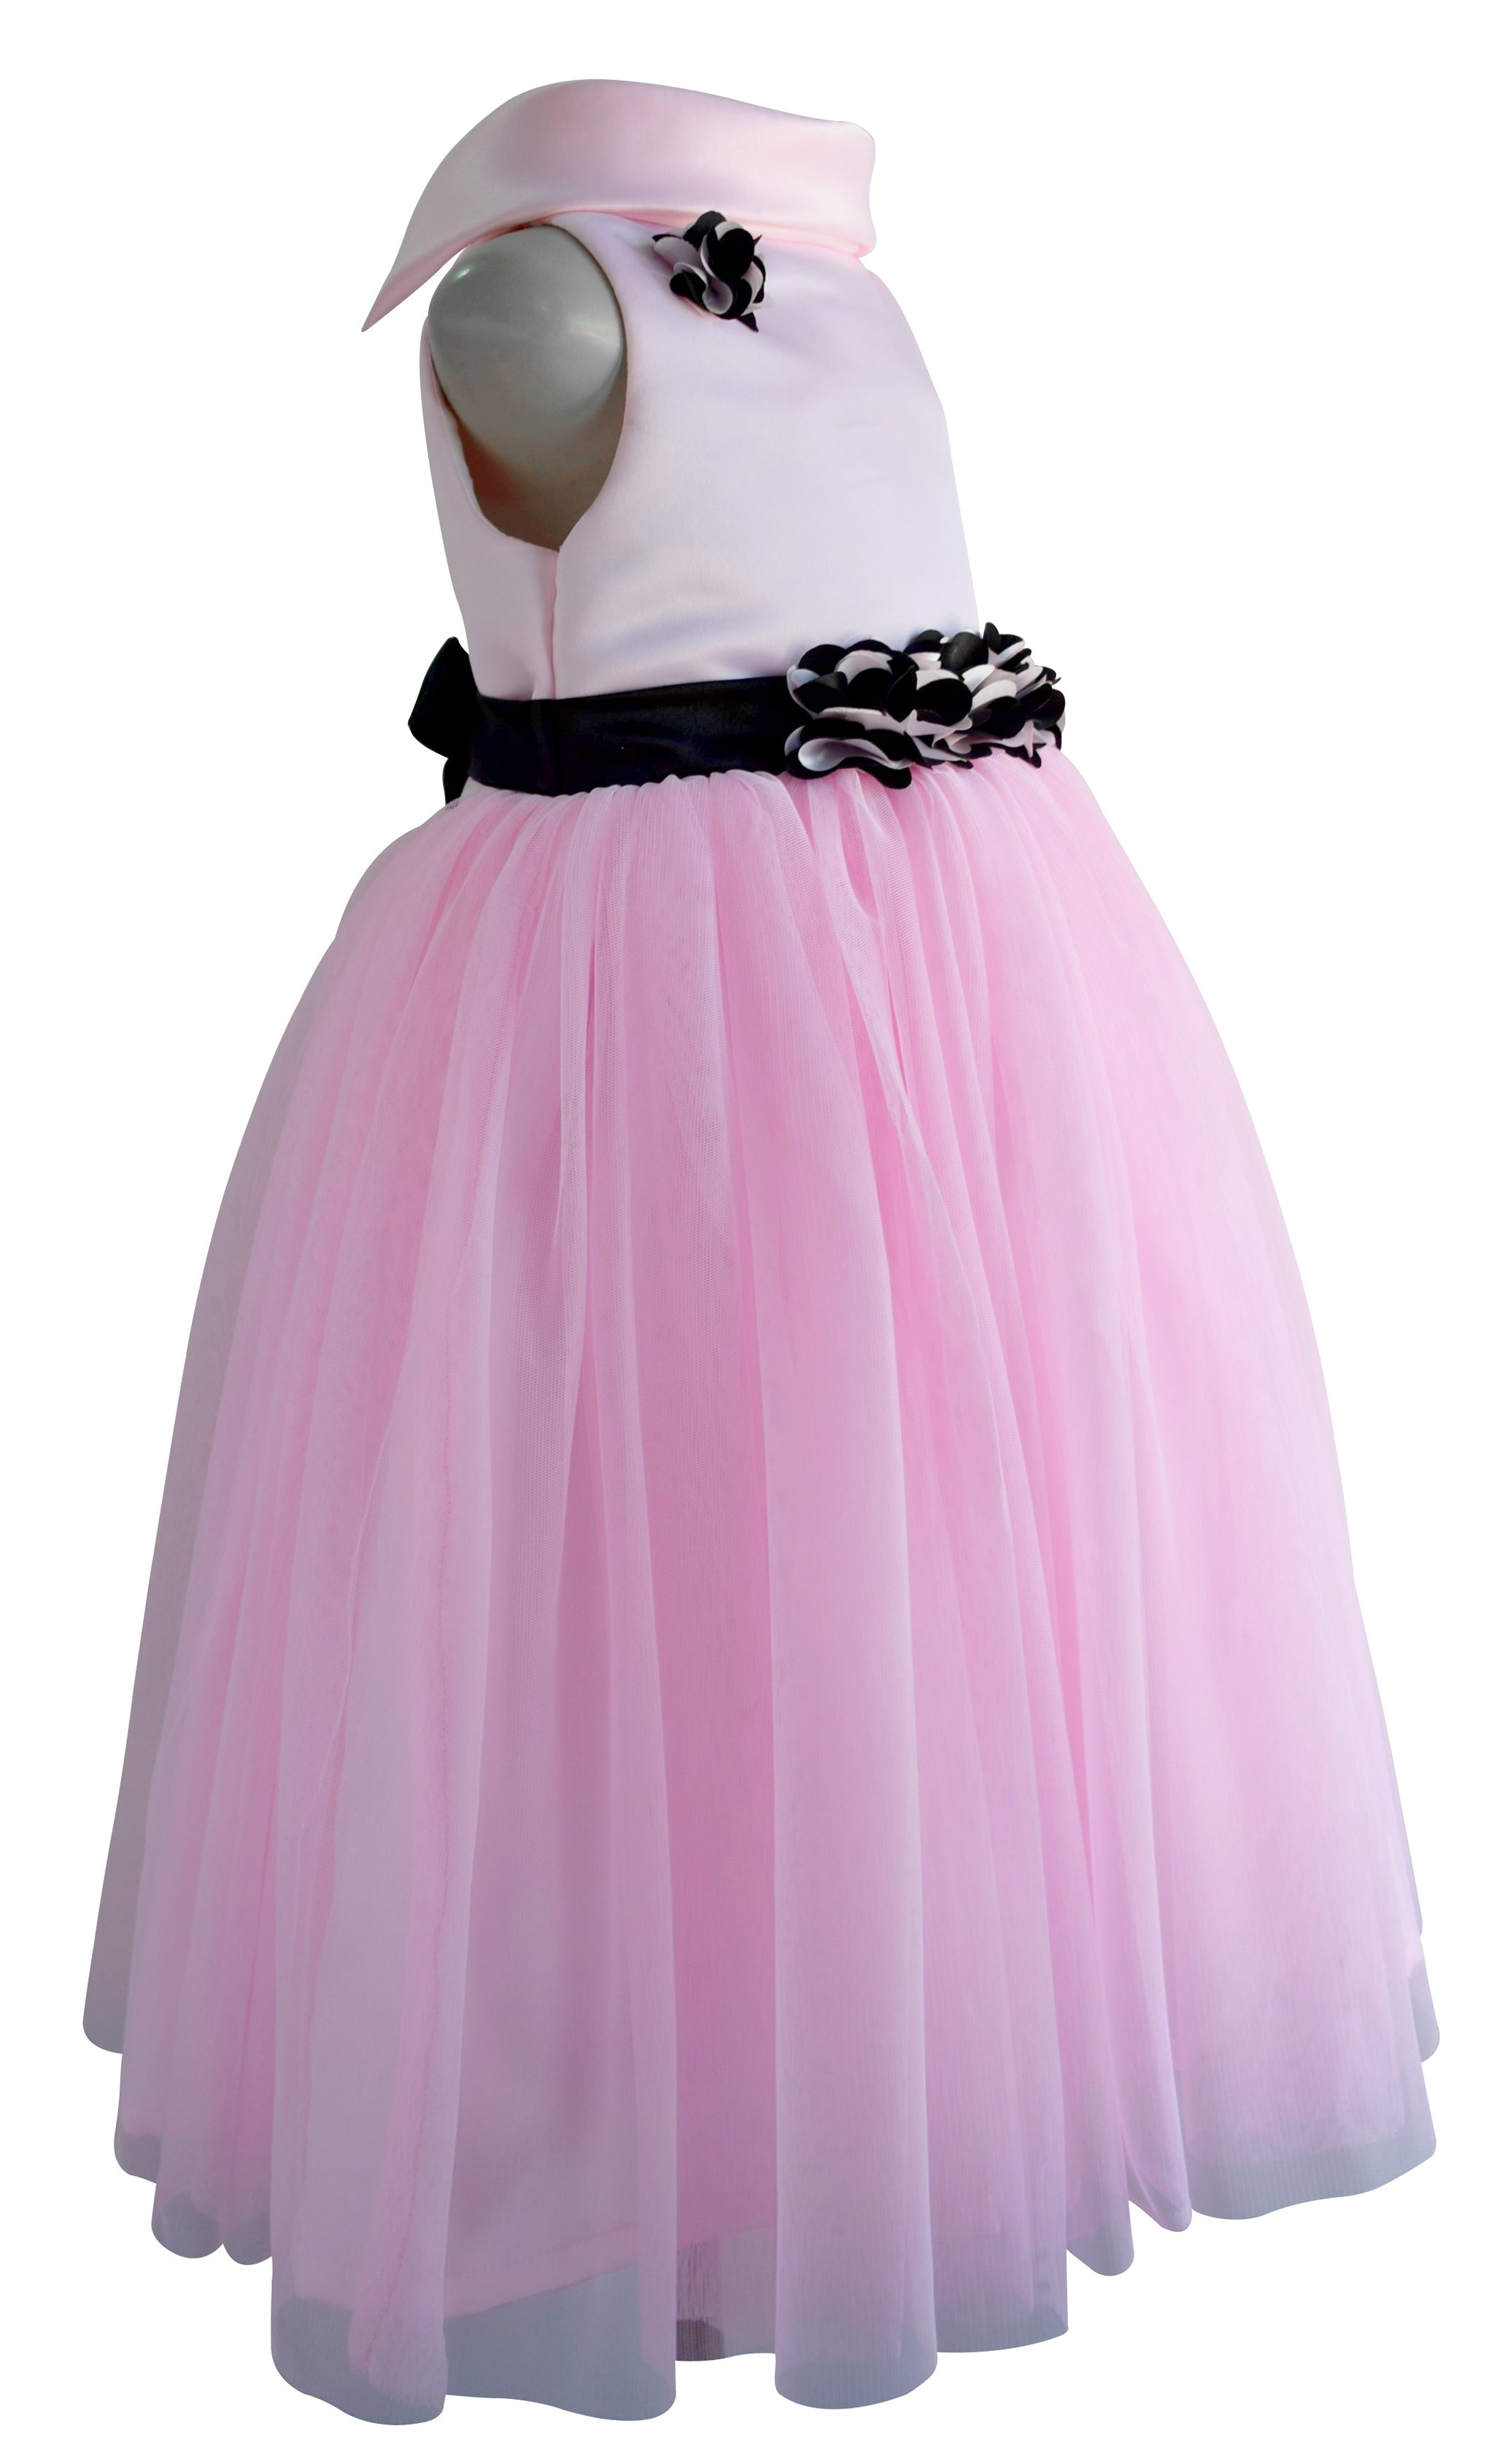 ada3305dc181 Buy Girls party wear dresses online|birthday dresses|dresses for girls